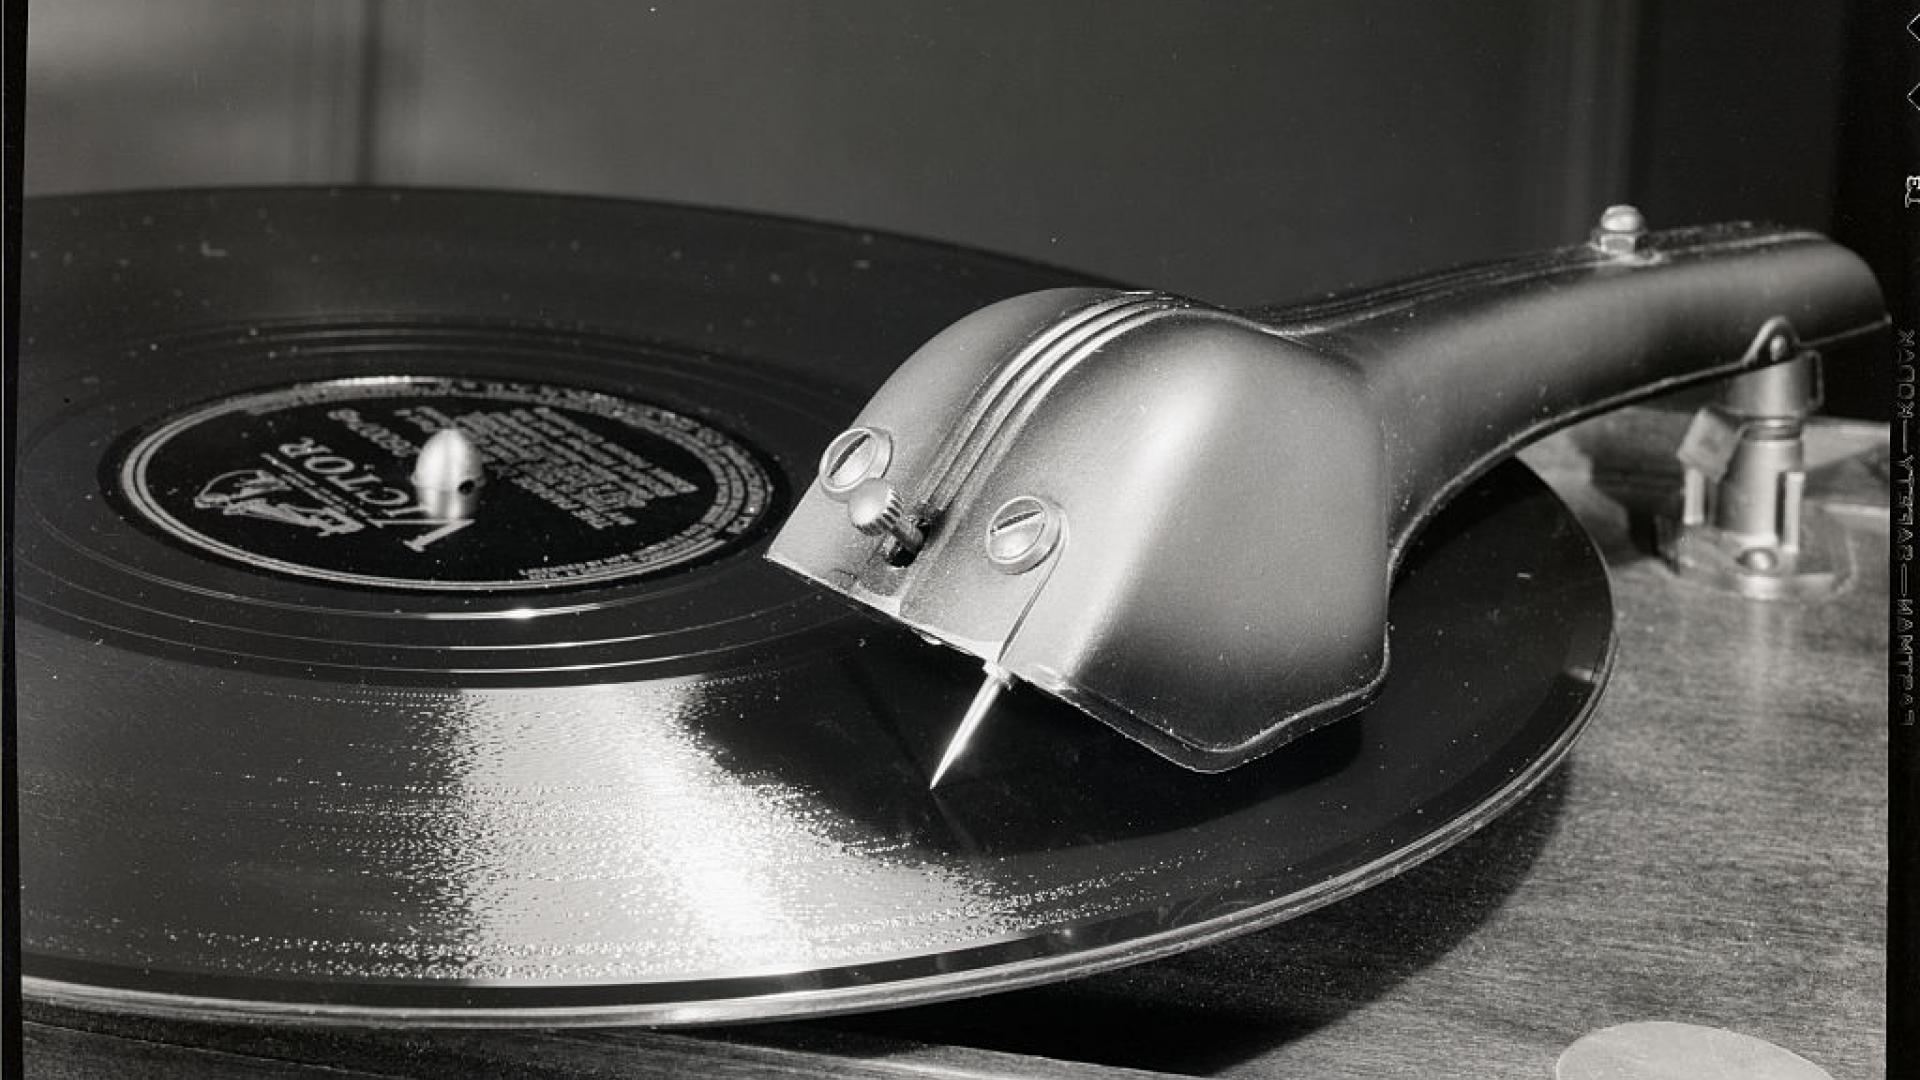 Close-up of a phonograph needle and arm on a record.